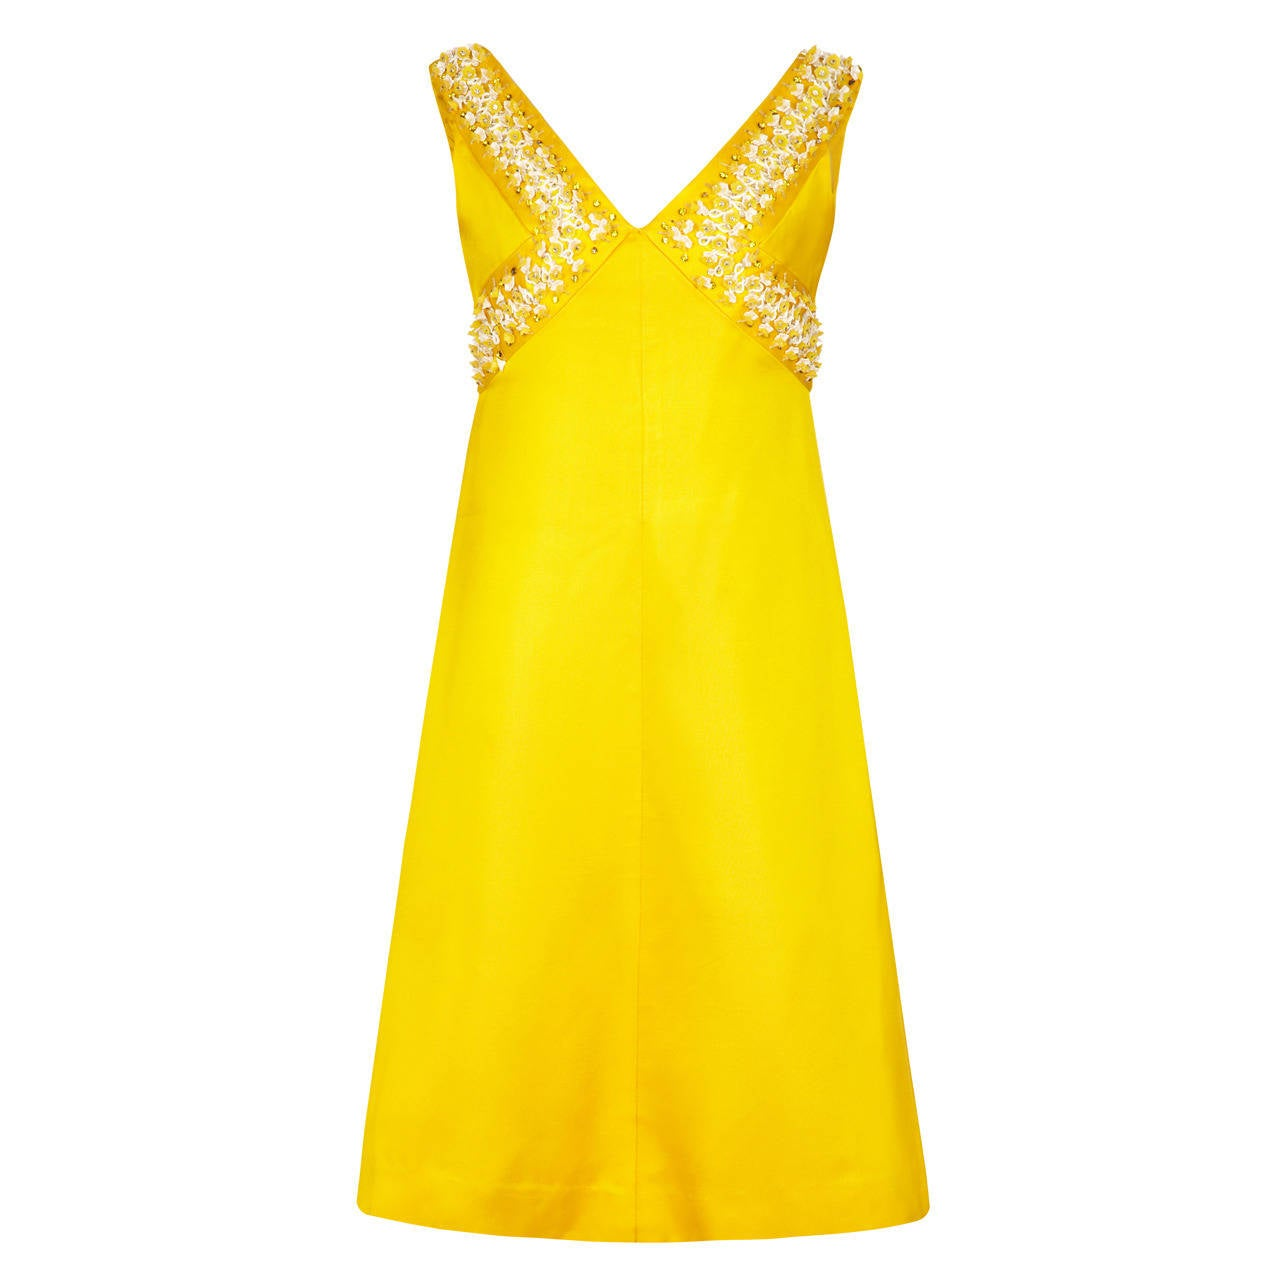 1960s French Couture Yellow Silk Dress With 3D Beading For Sale